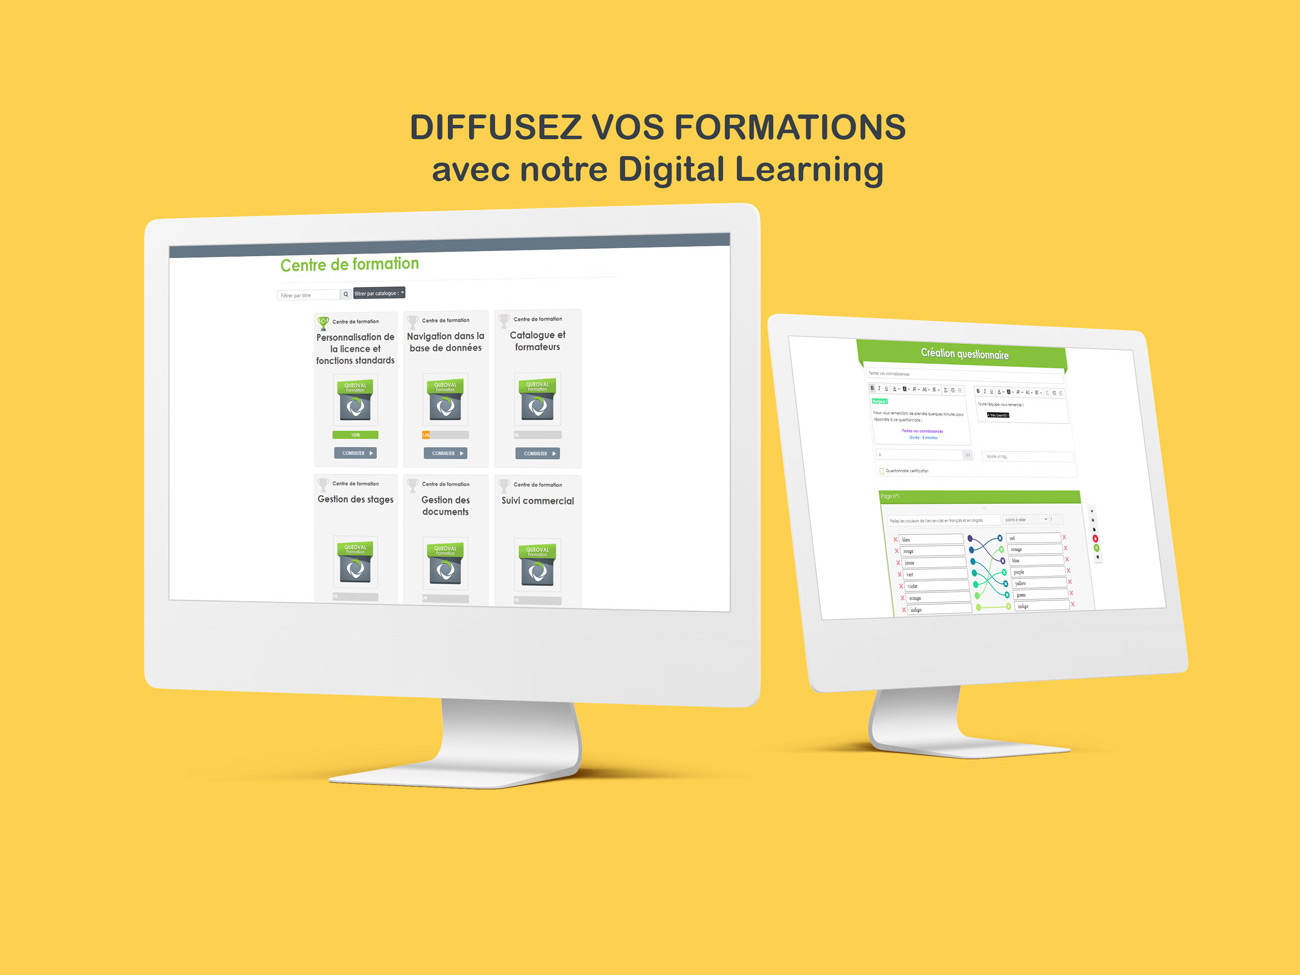 diffusez vos formations avec notre digital learning